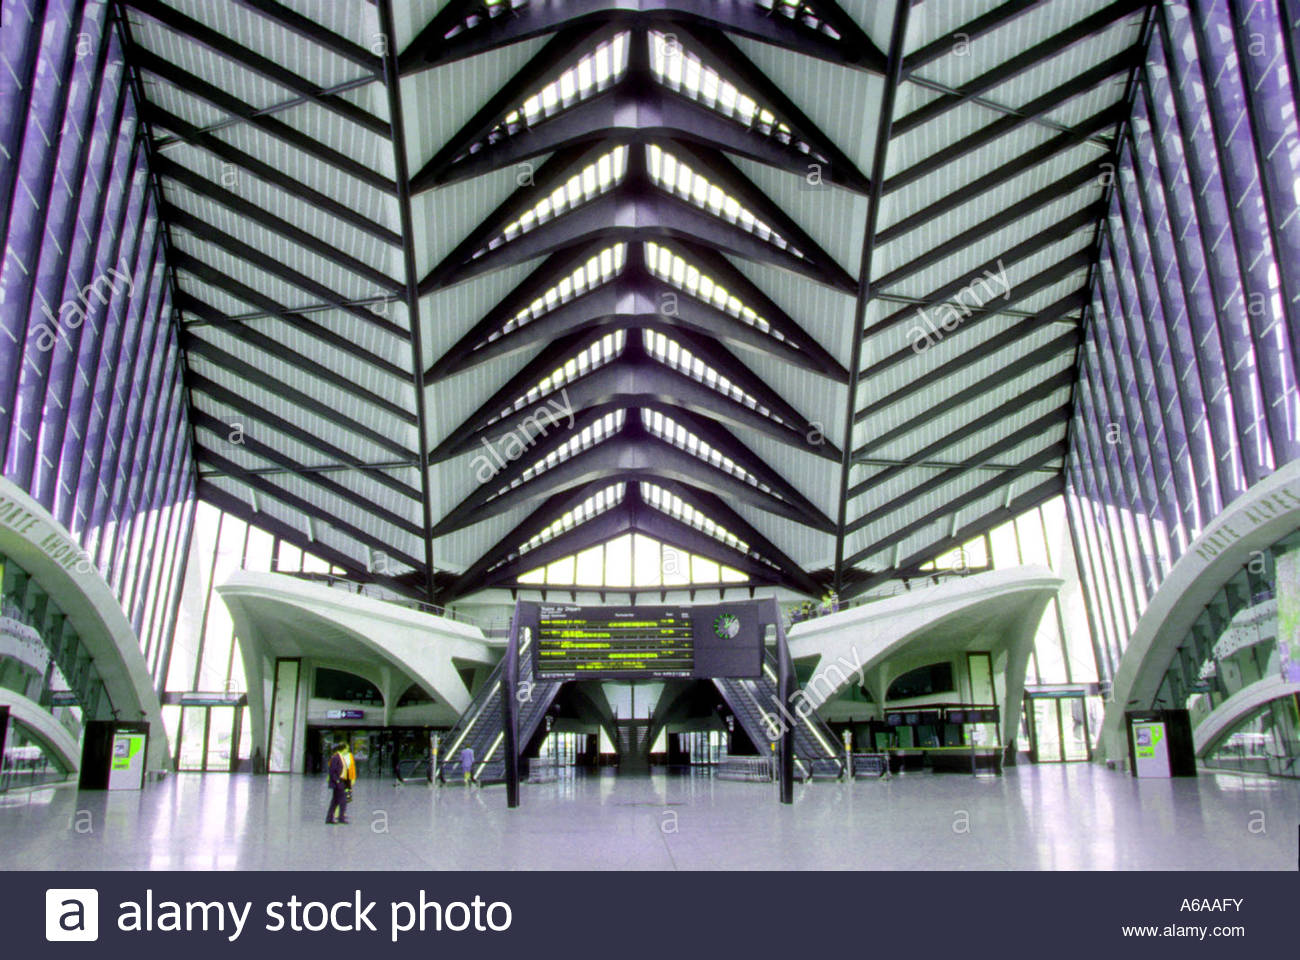 Lyon St Exupery France Lyon St Exupery Airport Tgv Station Designed By Santiago